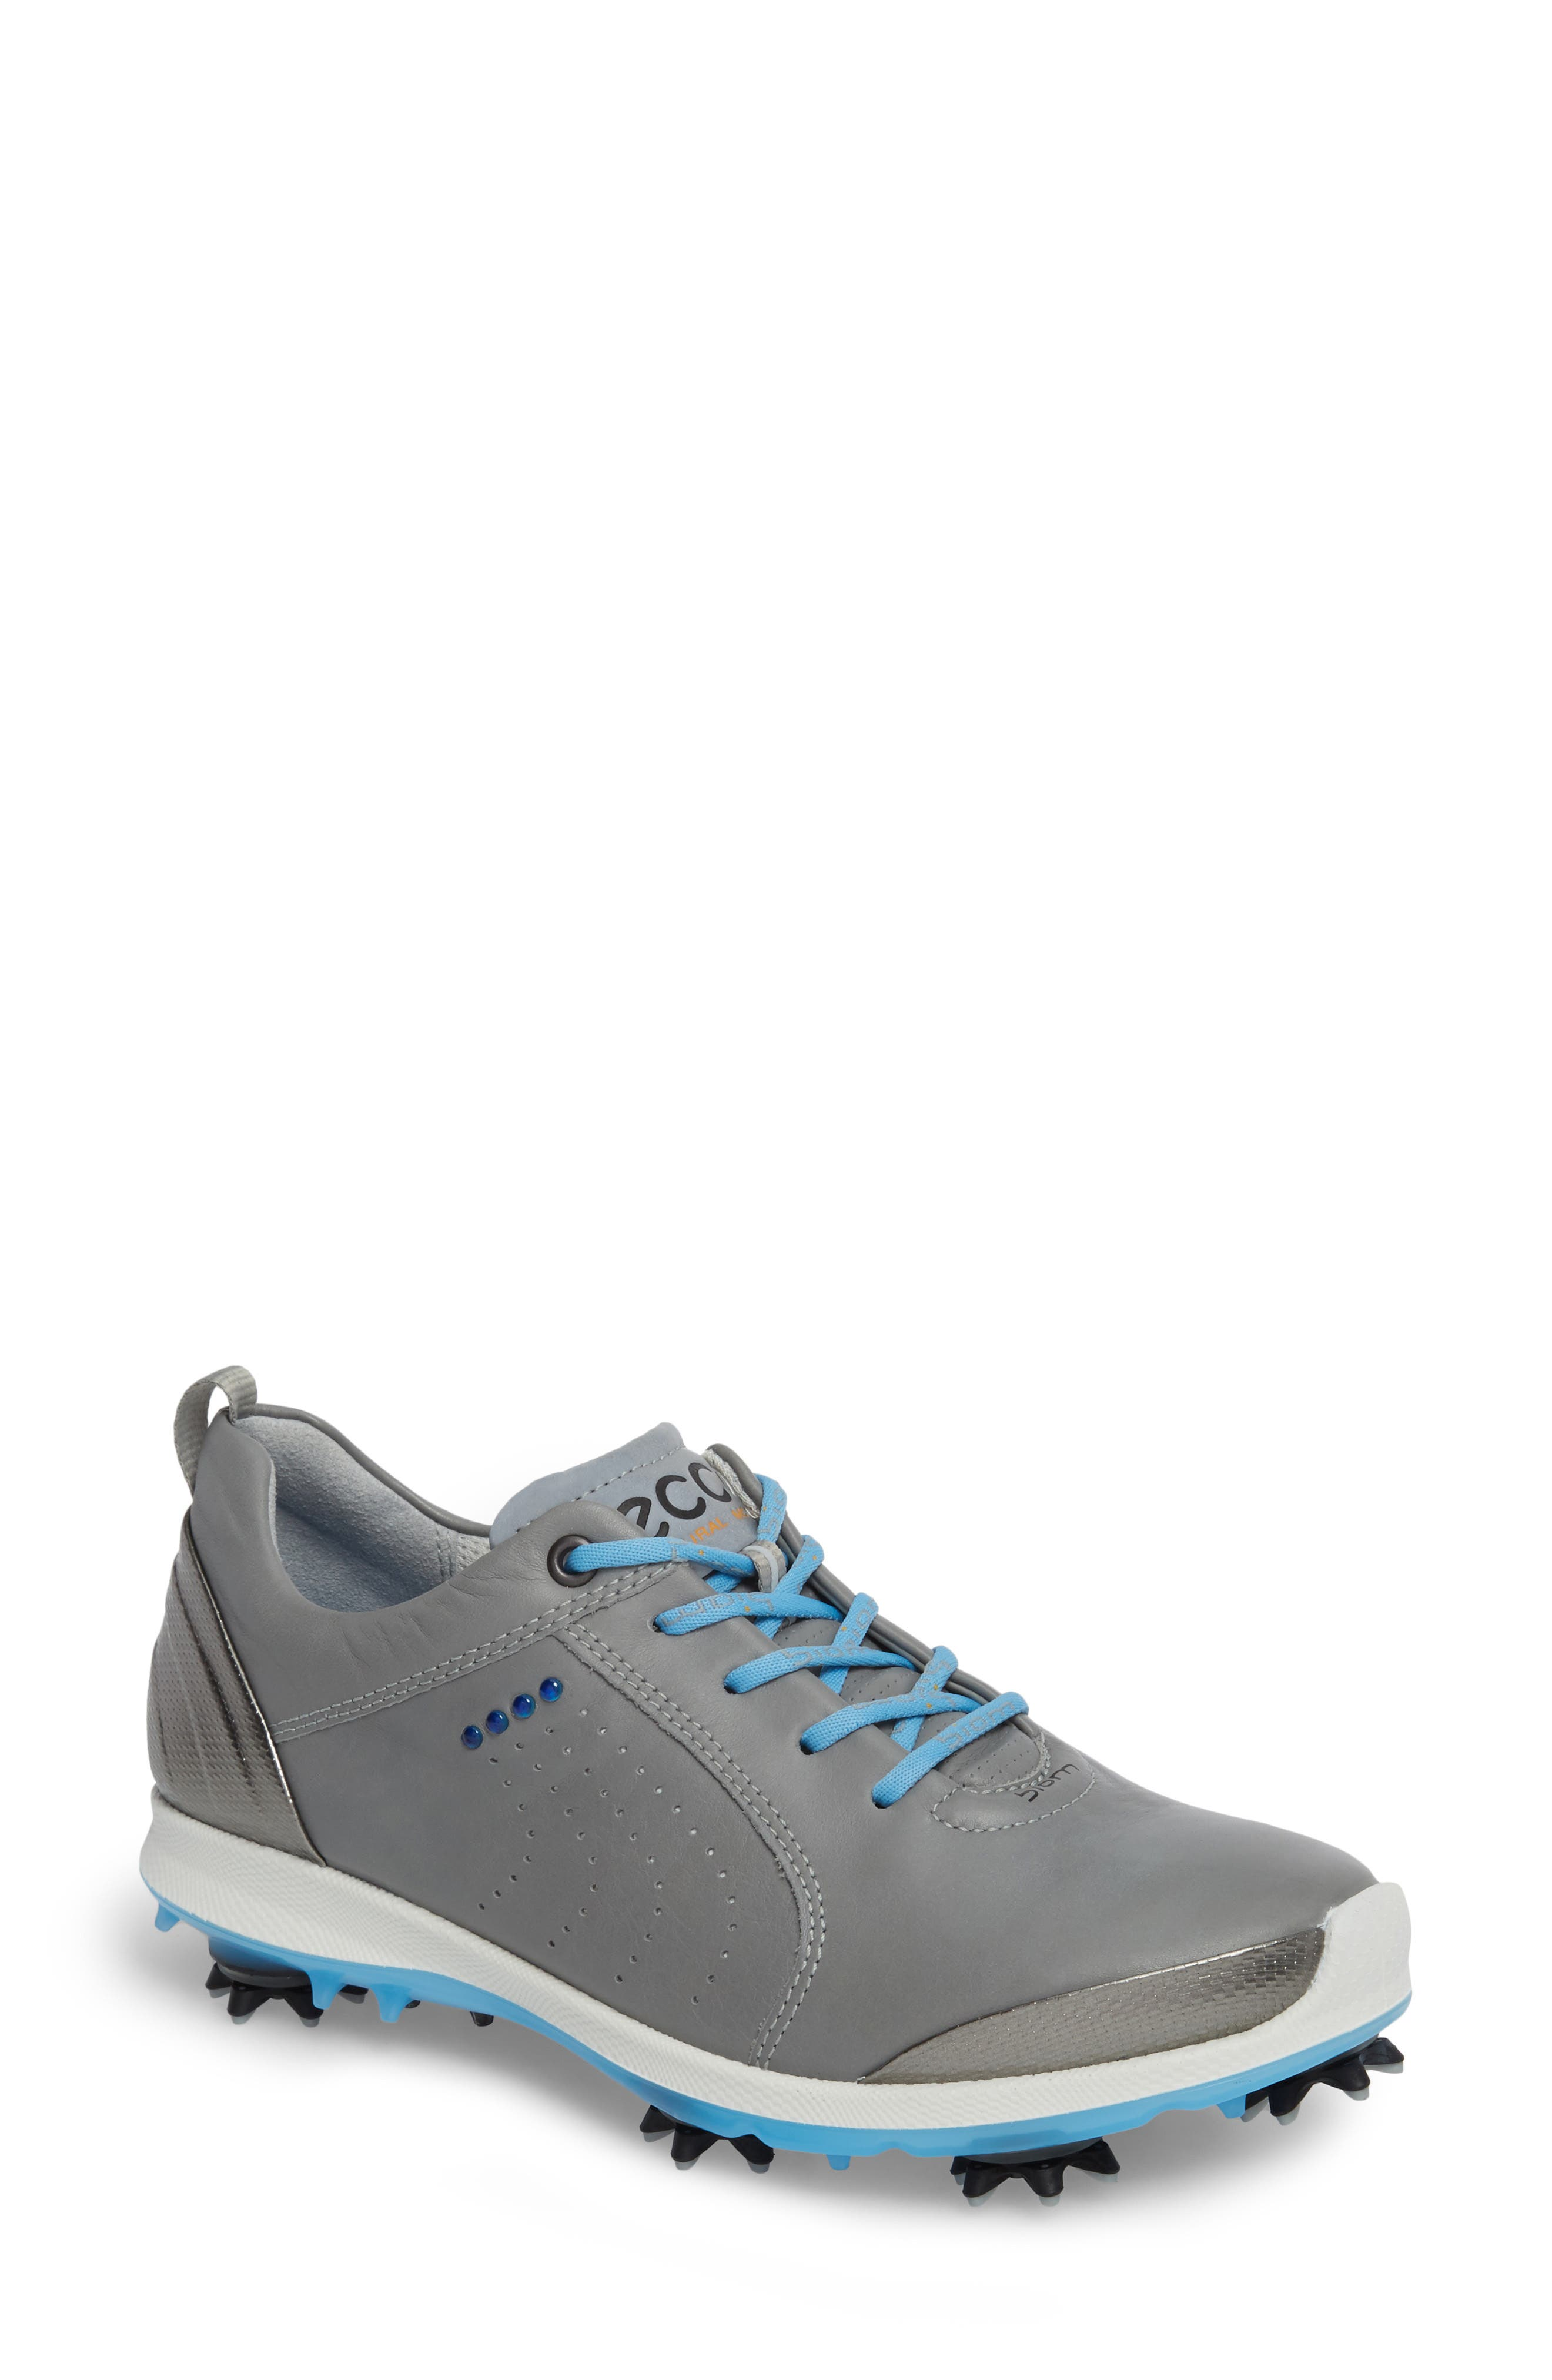 BIOM 2 Waterproof Golf Shoe,                         Main,                         color, Wild Dove/ Sky Blue Leather